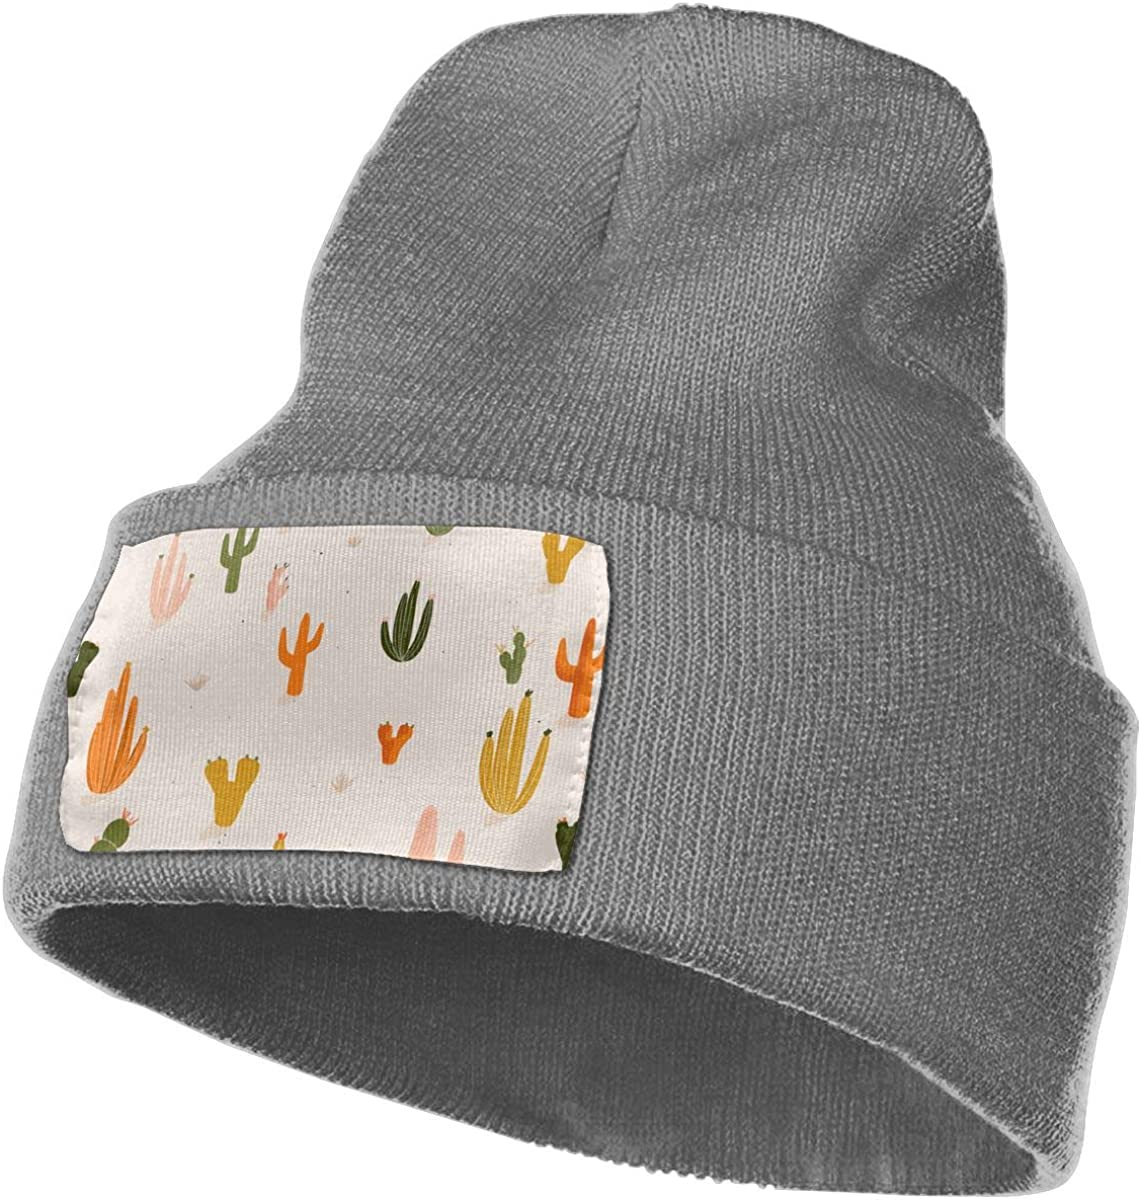 TAOMAP89 Colorful Cactus Women and Men Skull Caps Winter Warm Stretchy Knitting Beanie Hats